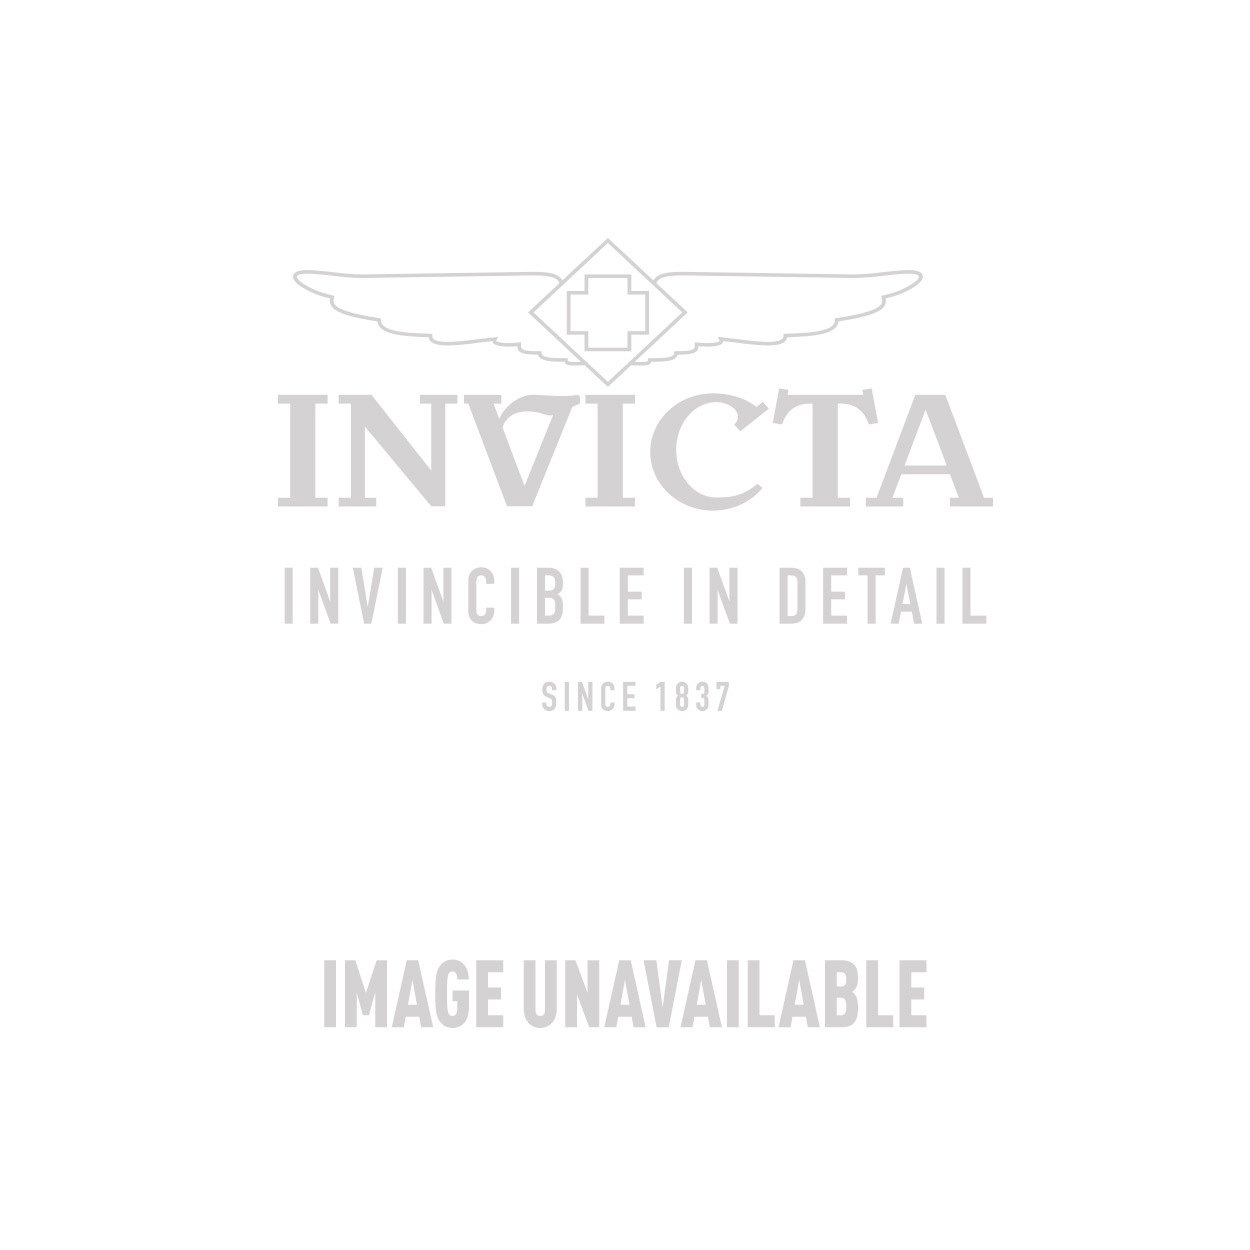 Invicta Reserve Swiss Made Quartz Watch - Black case with Black tone Stainless Steel band - Model 10594